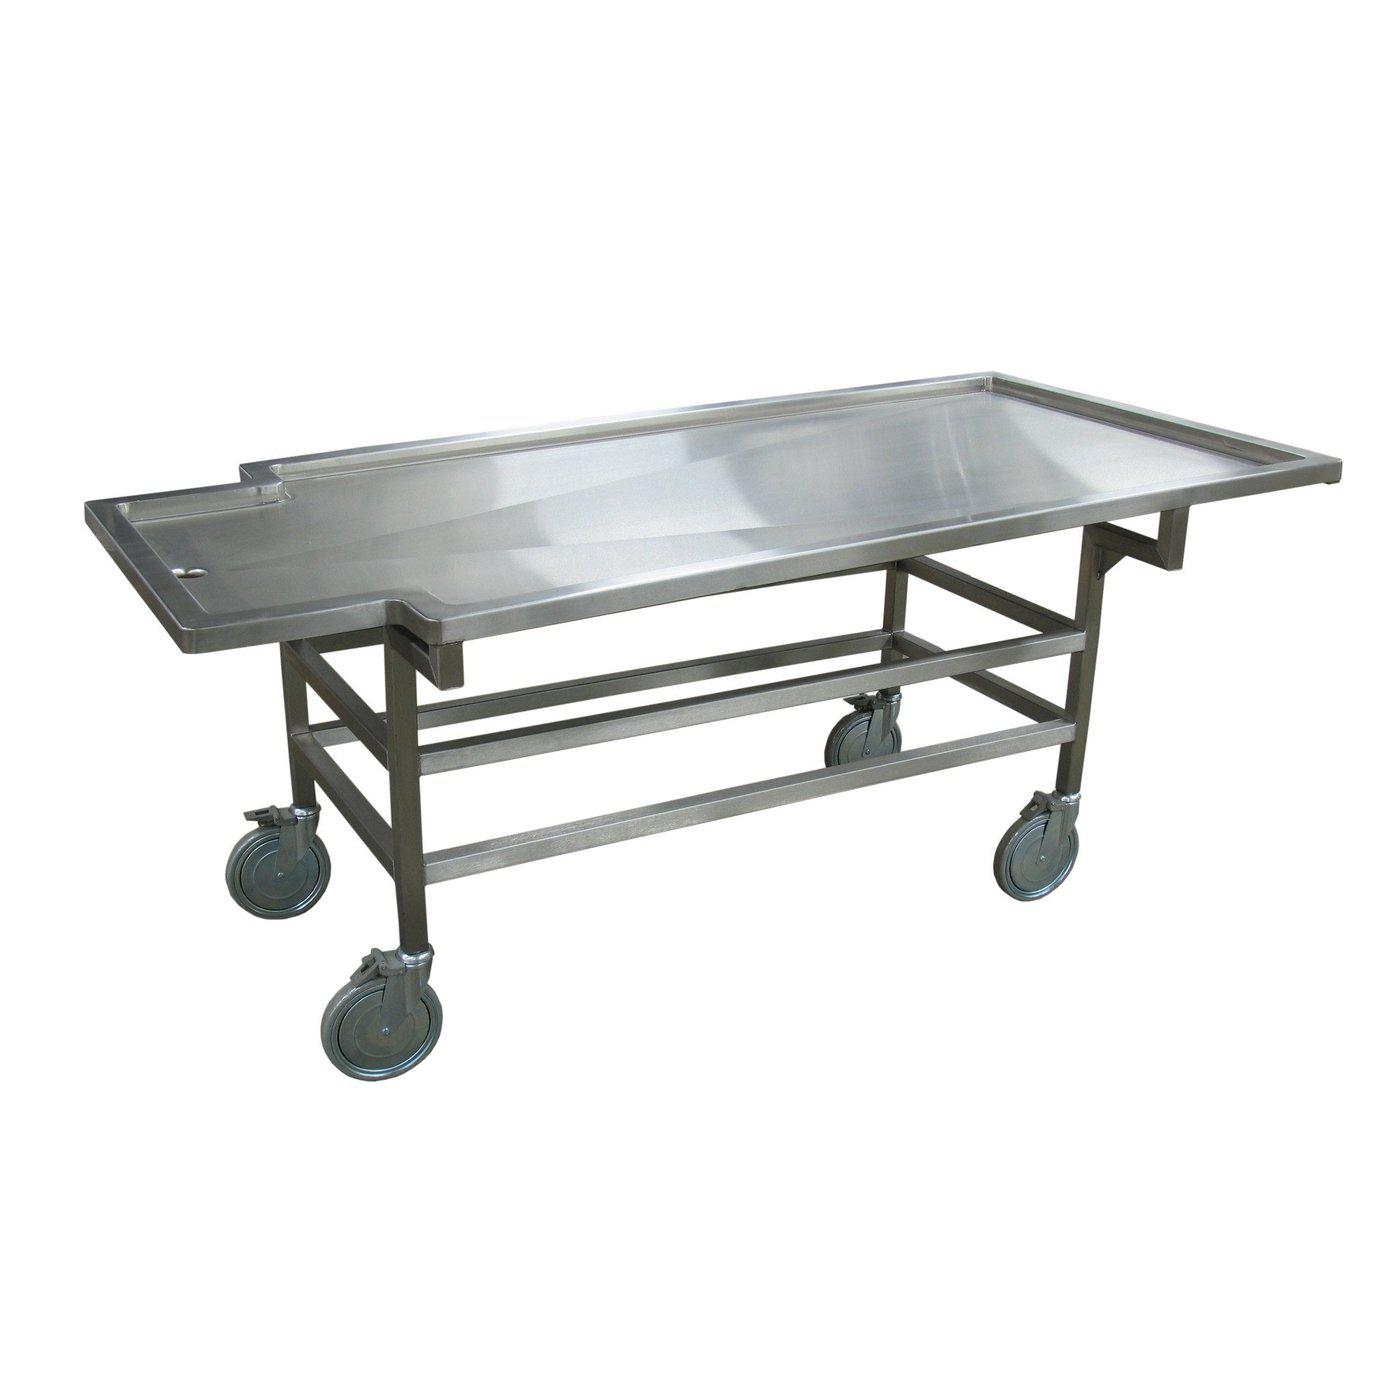 Bariatric Carrier Chassis-Body Transporter-Mortech Manufacturing Company Inc. Quality Stainless Steel Autopsy, Morgue, Funeral Home, Necropsy, Veterinary / Anatomy, Dissection Equipment and Accessories